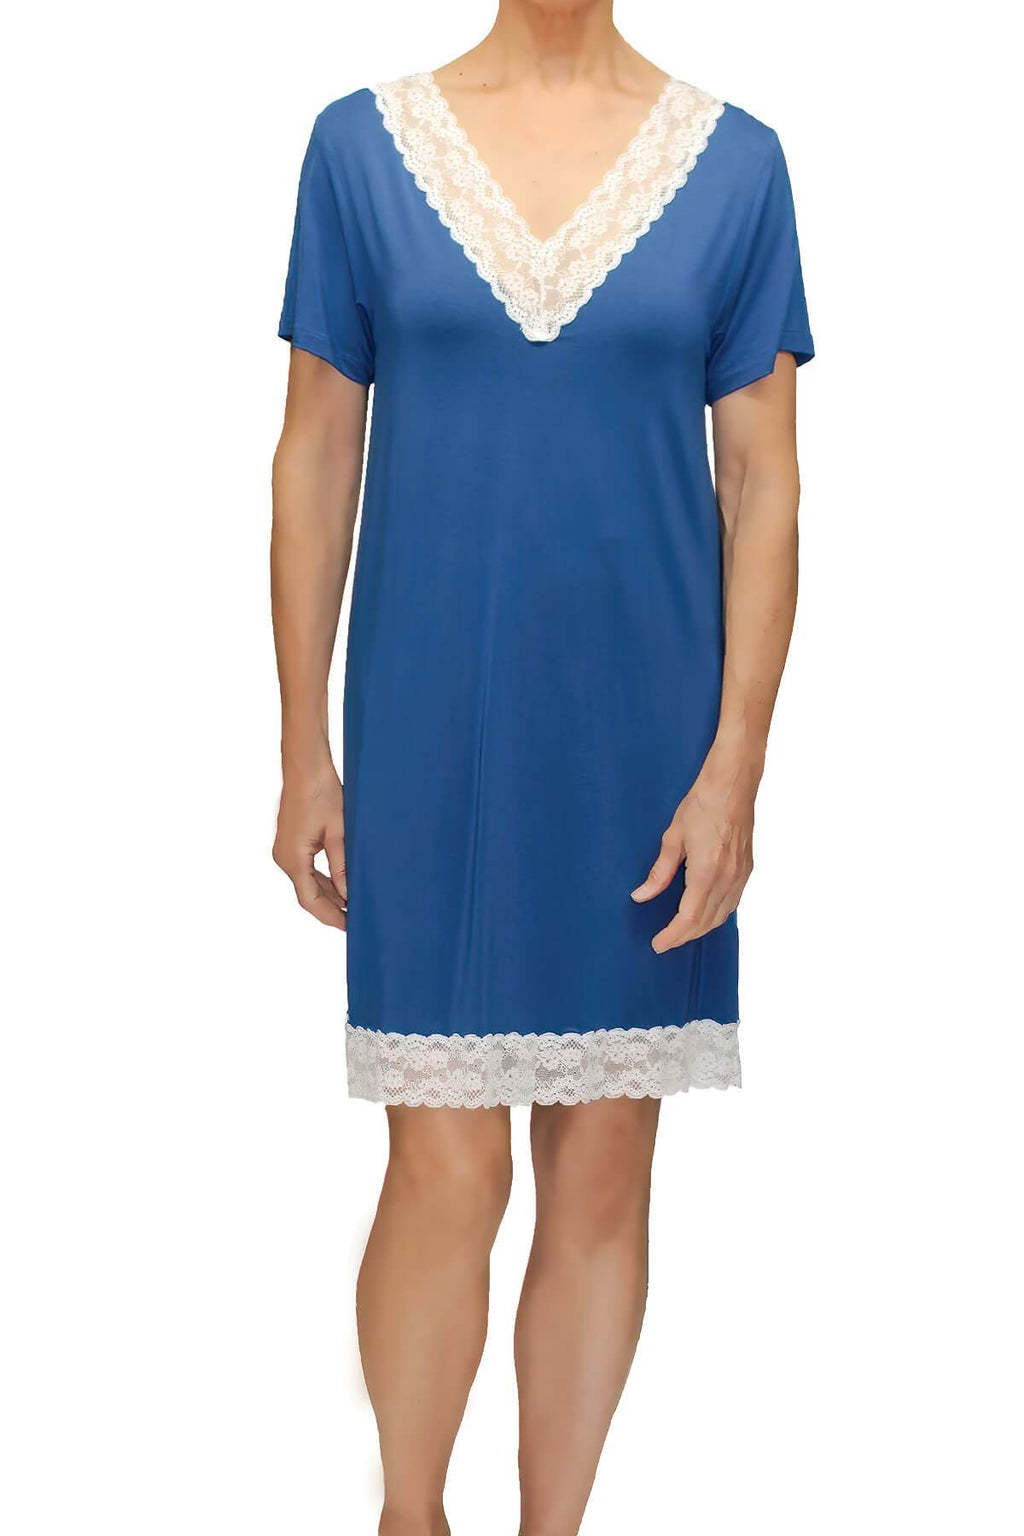 Lily Sleepshirt - Cadet Blue Mystique Intimates